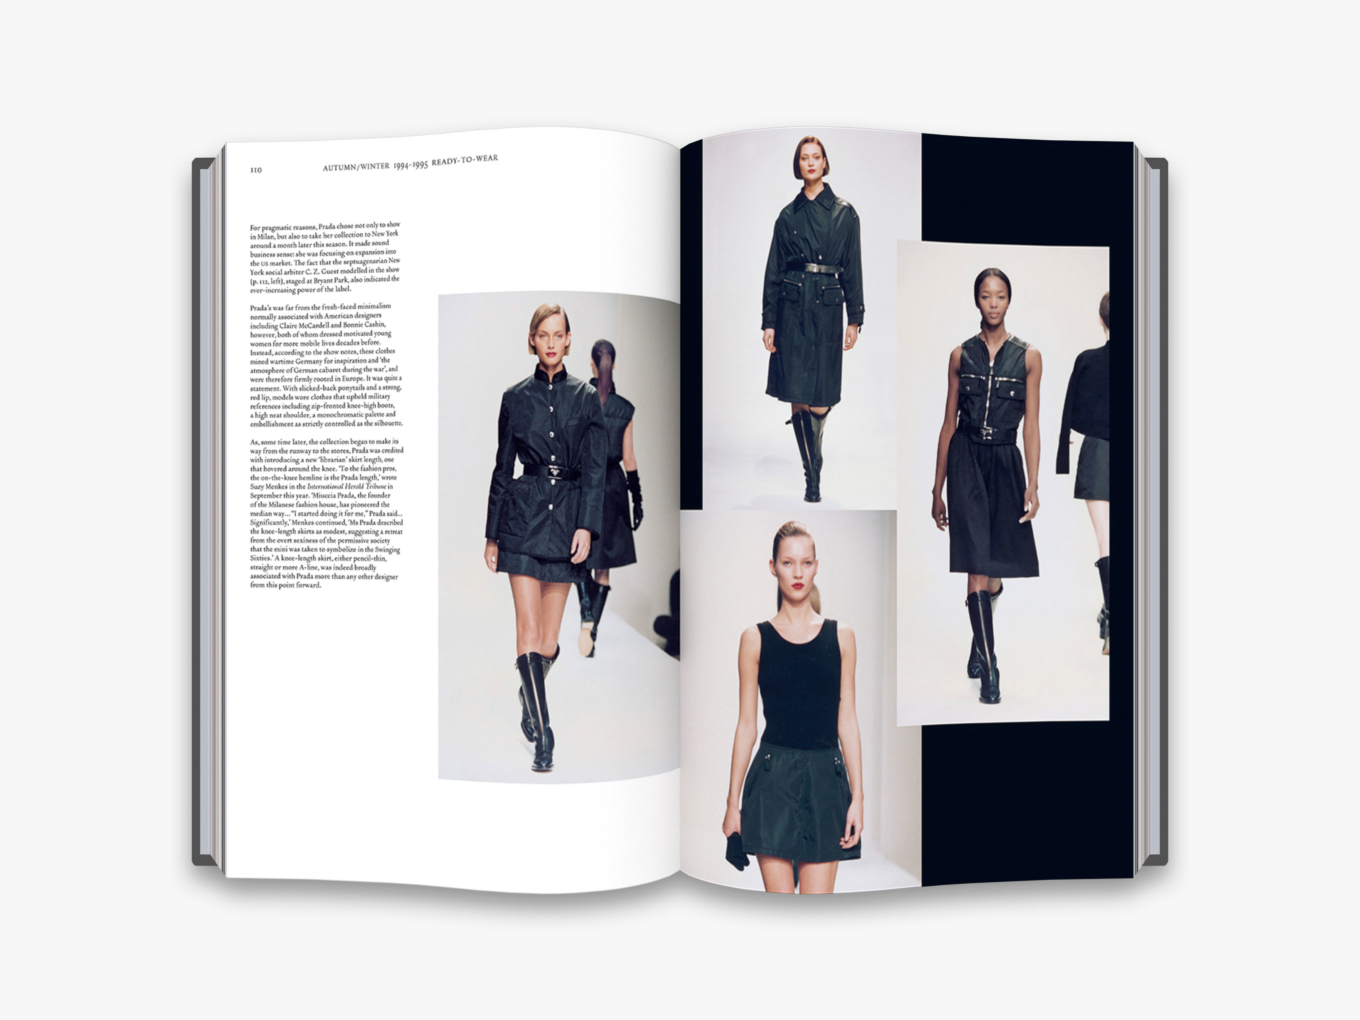 By Susannah Frankel from Prada Catwalk: The Complete Collections copyright Thames & Hudson 2019